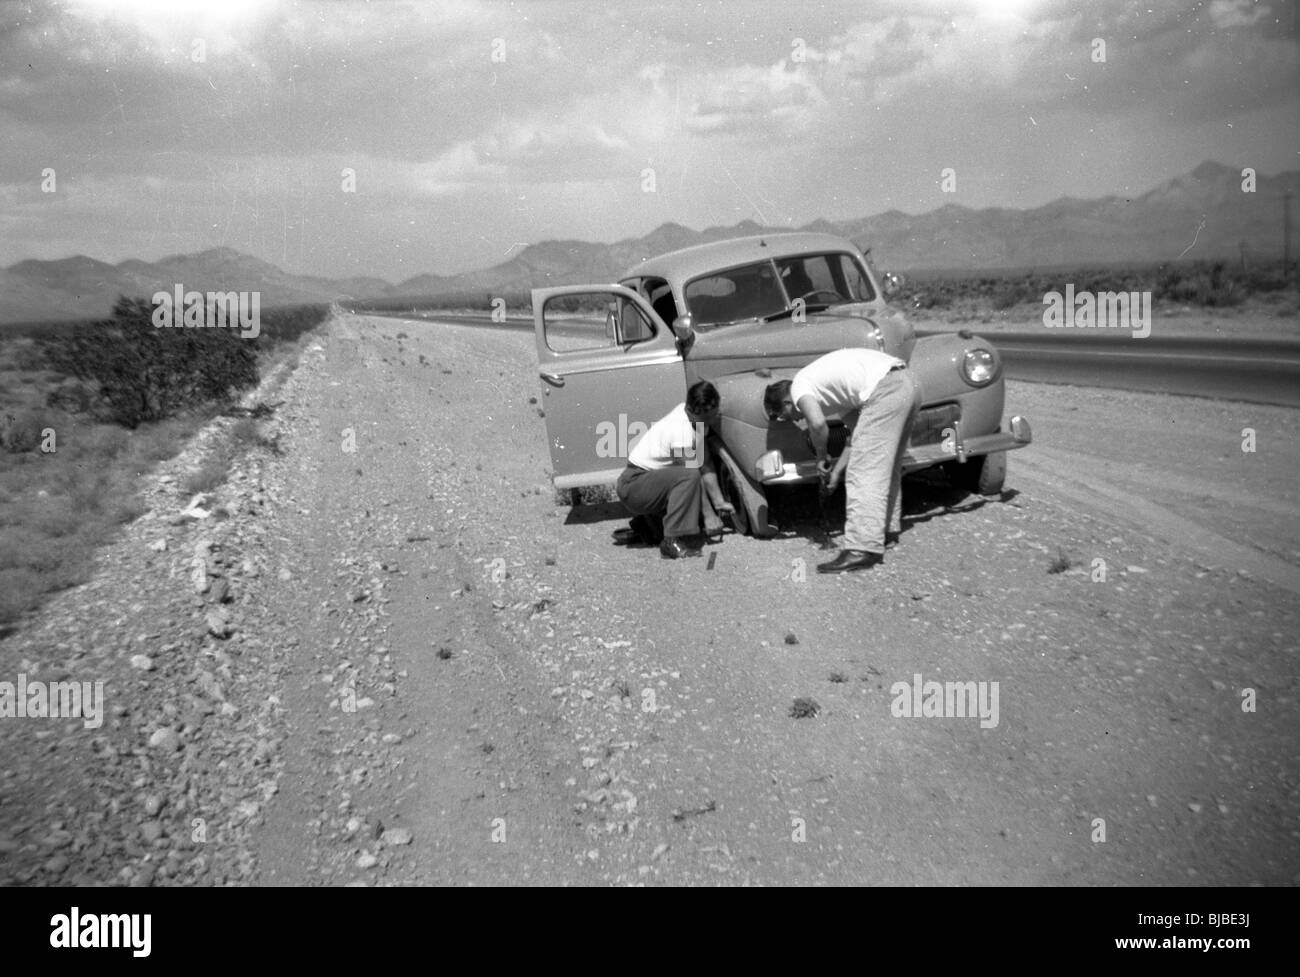 Two travelers change a flat tire in the American Southwest during the 1940s. car travel highway mountains desert - Stock Image